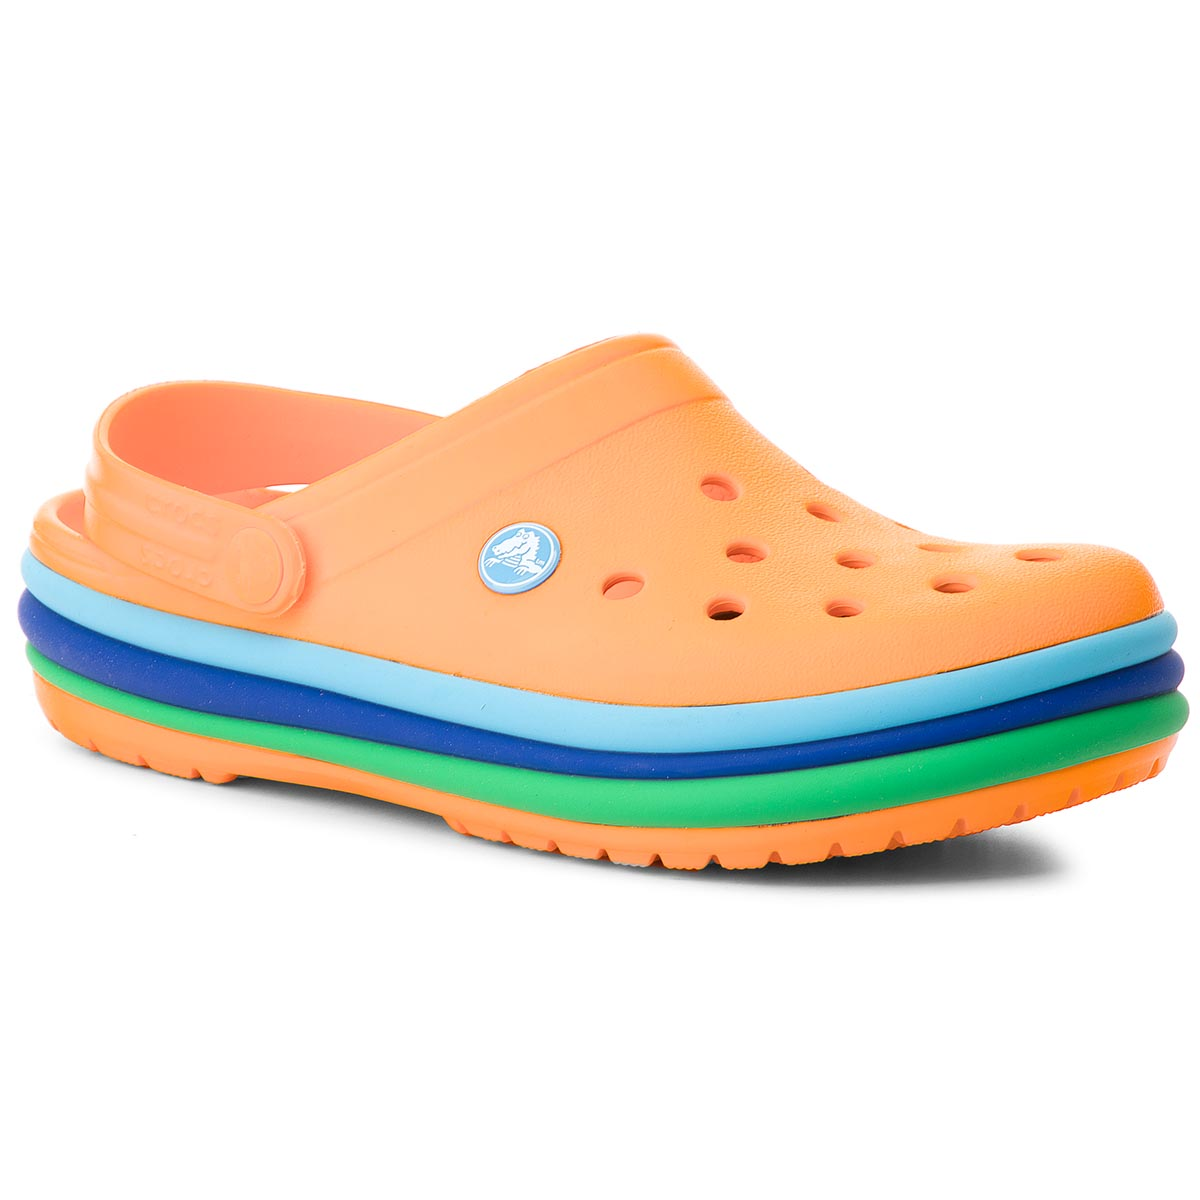 Klapki CROCS - Cb Rainbow Band Clog 205212 Blazing Orange